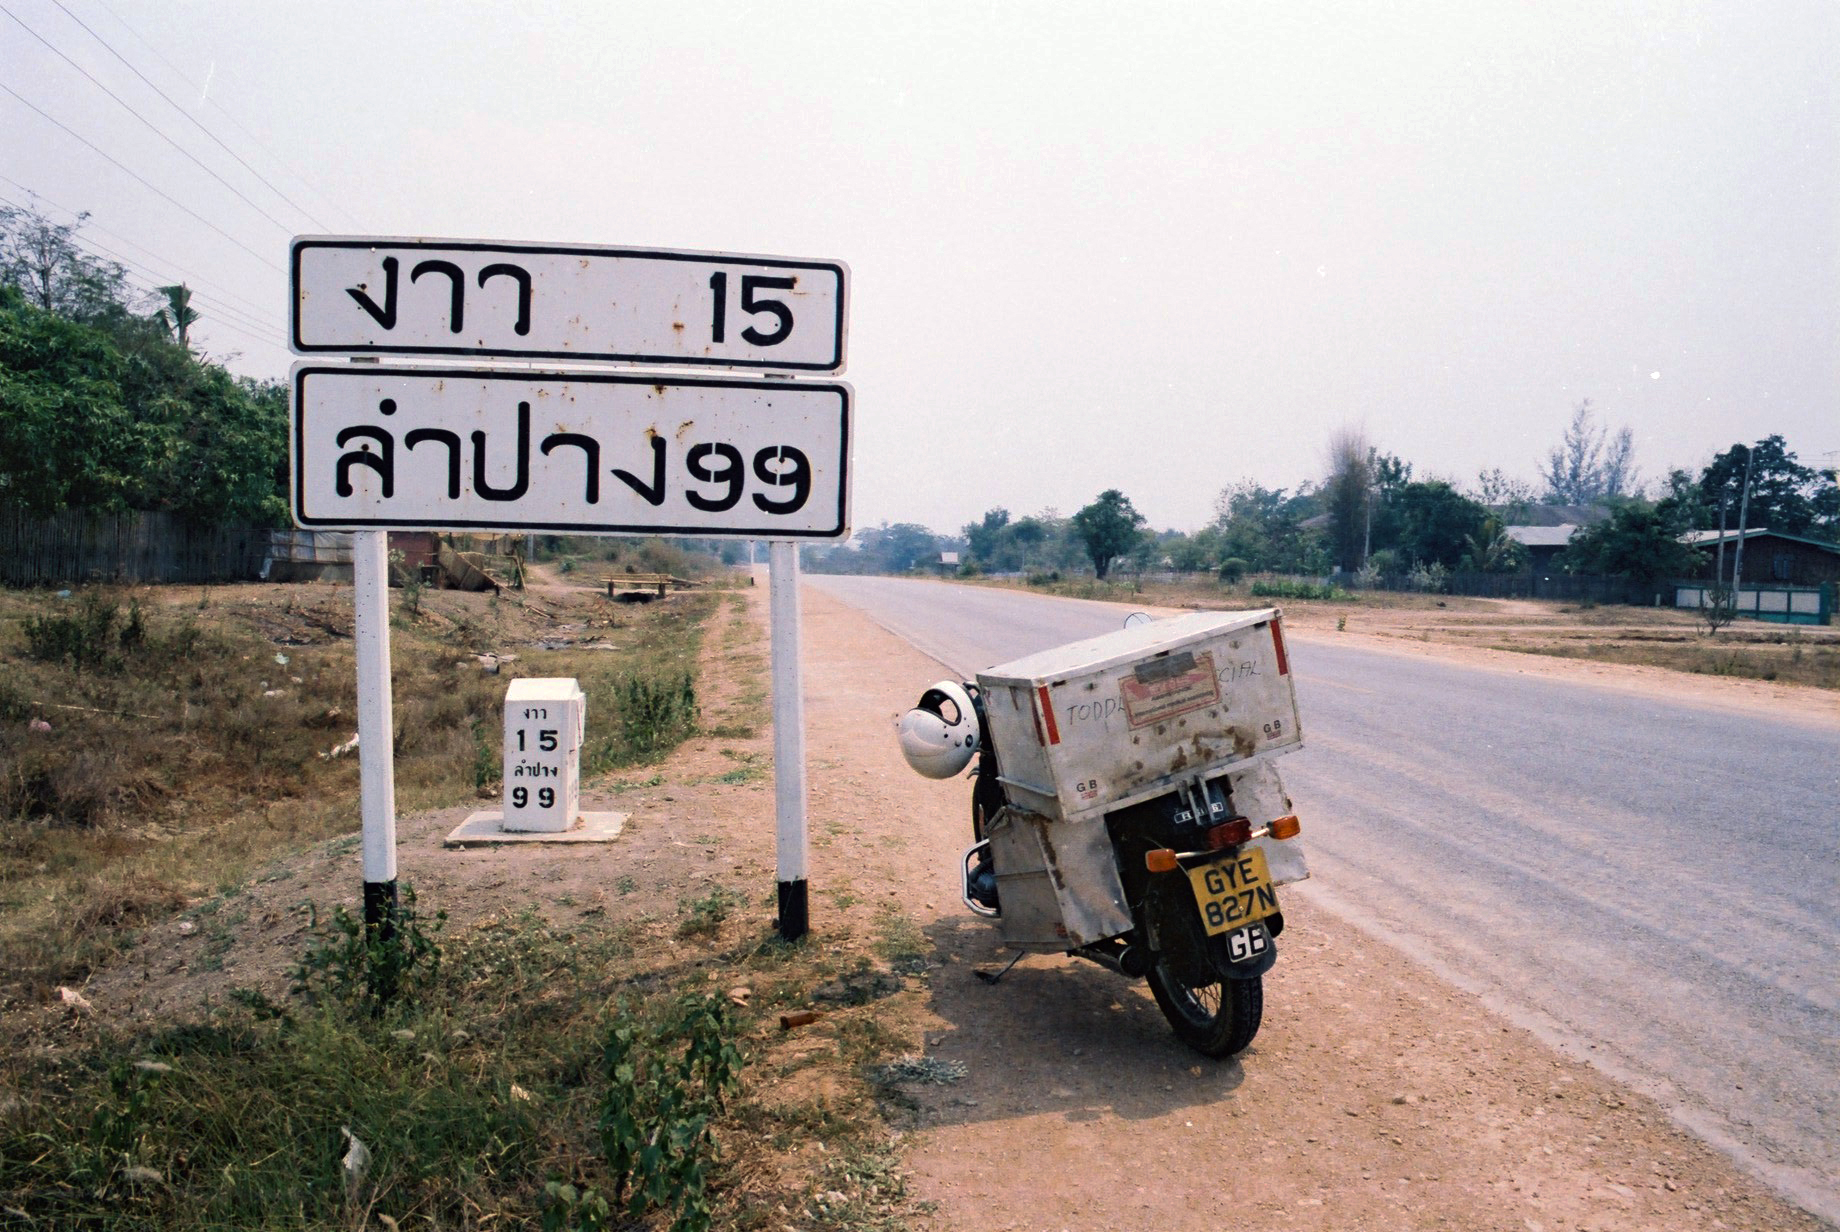 24. Thailand road signs